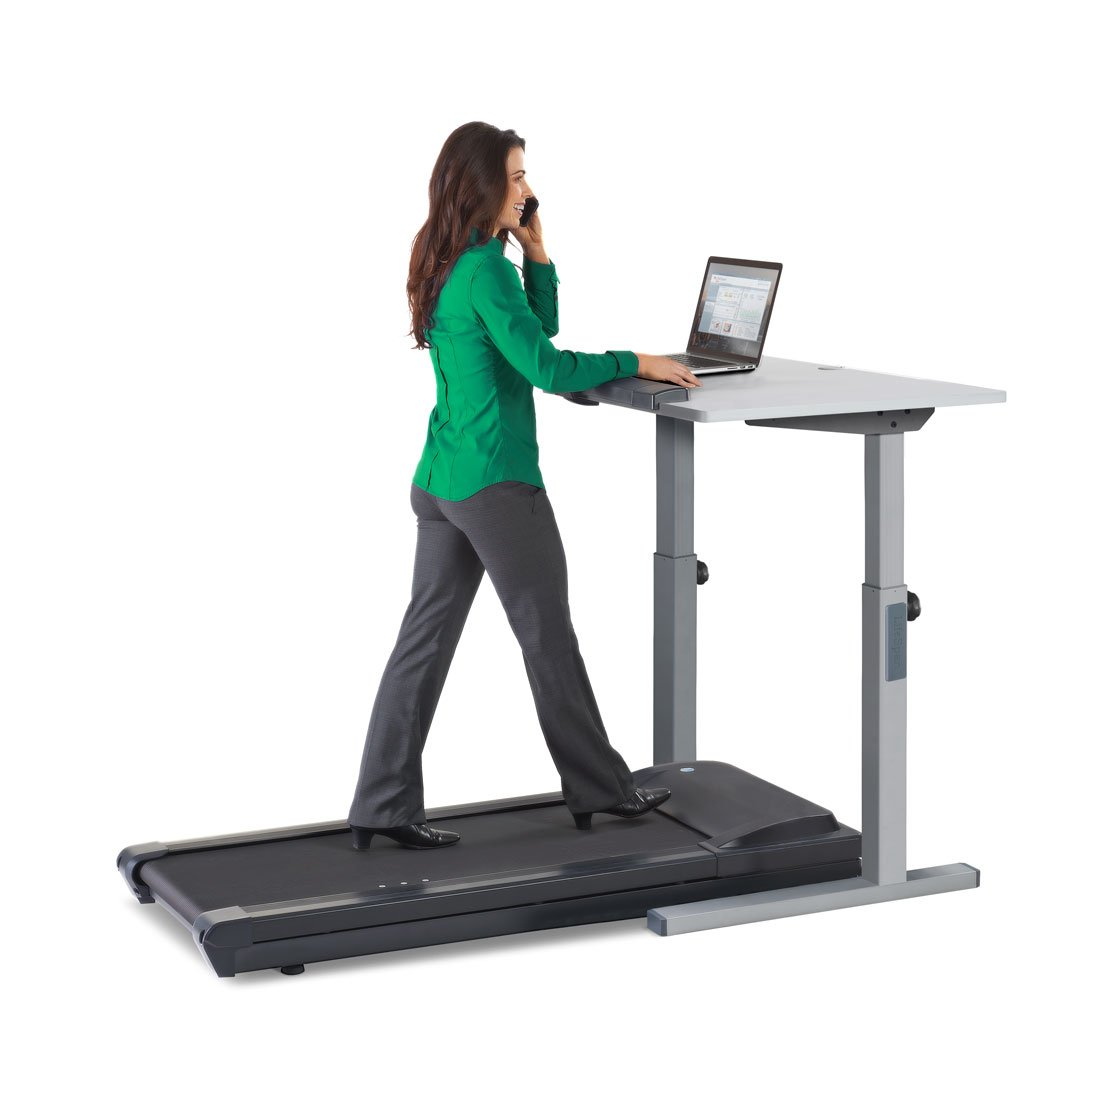 Picture of Treadmill Desk